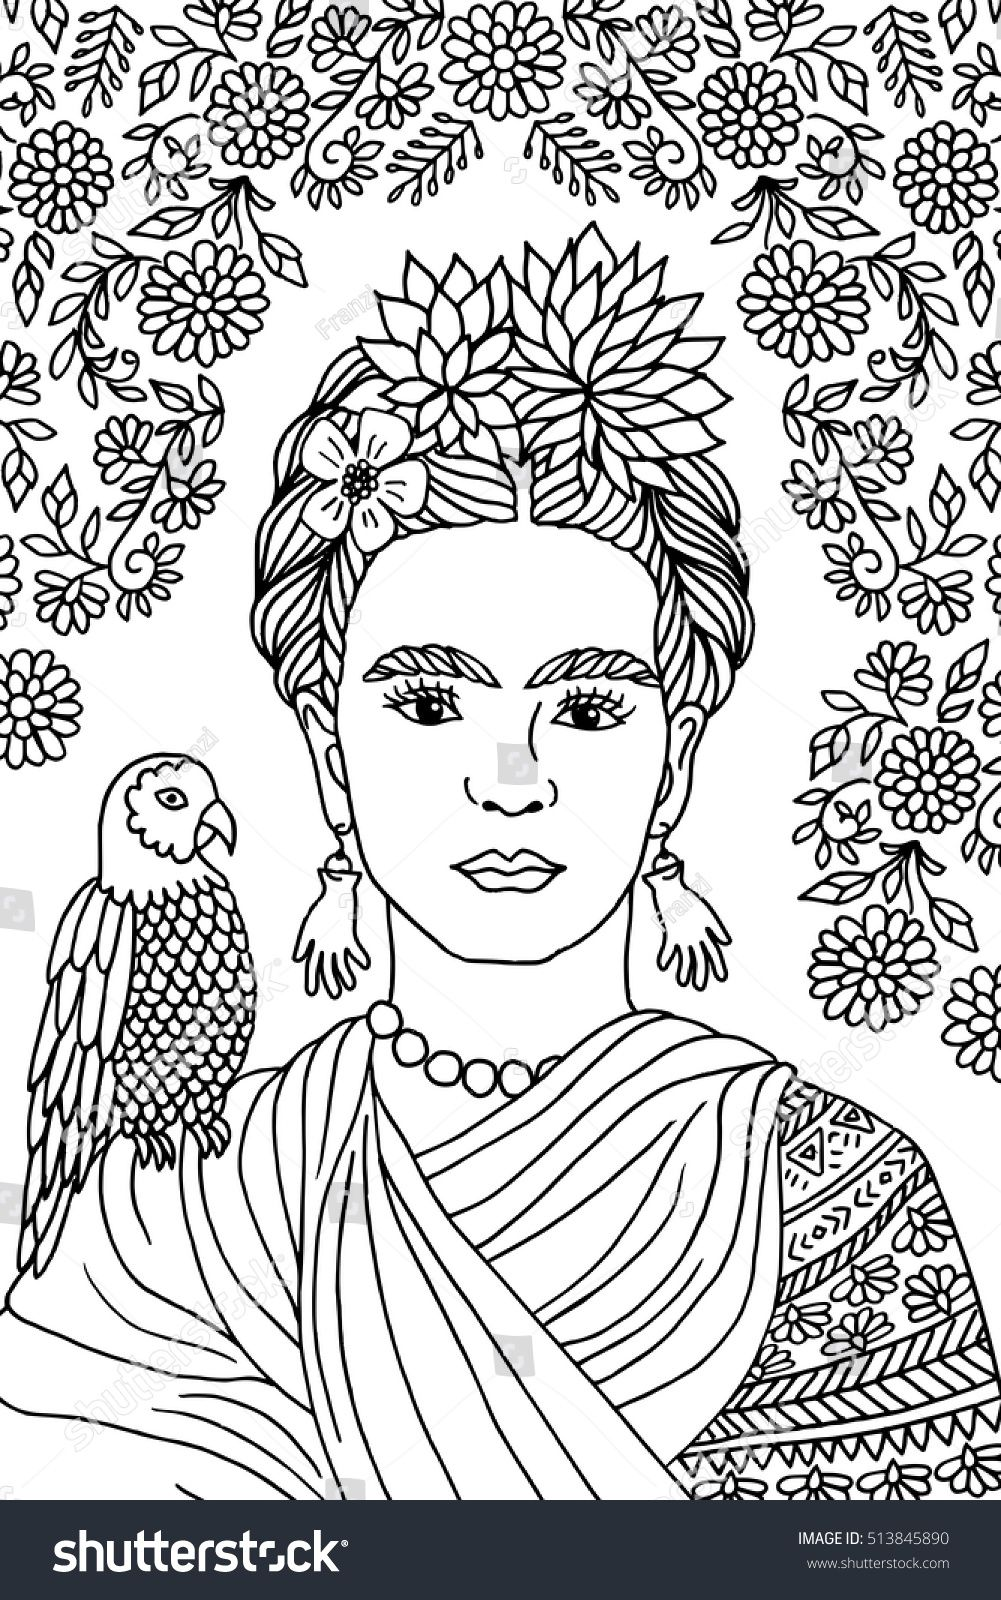 Worksheets Frida Kahlo Worksheets worksheets frida kahlo tokyoobserver just another hand drawn portrait of with floral background flowers in her